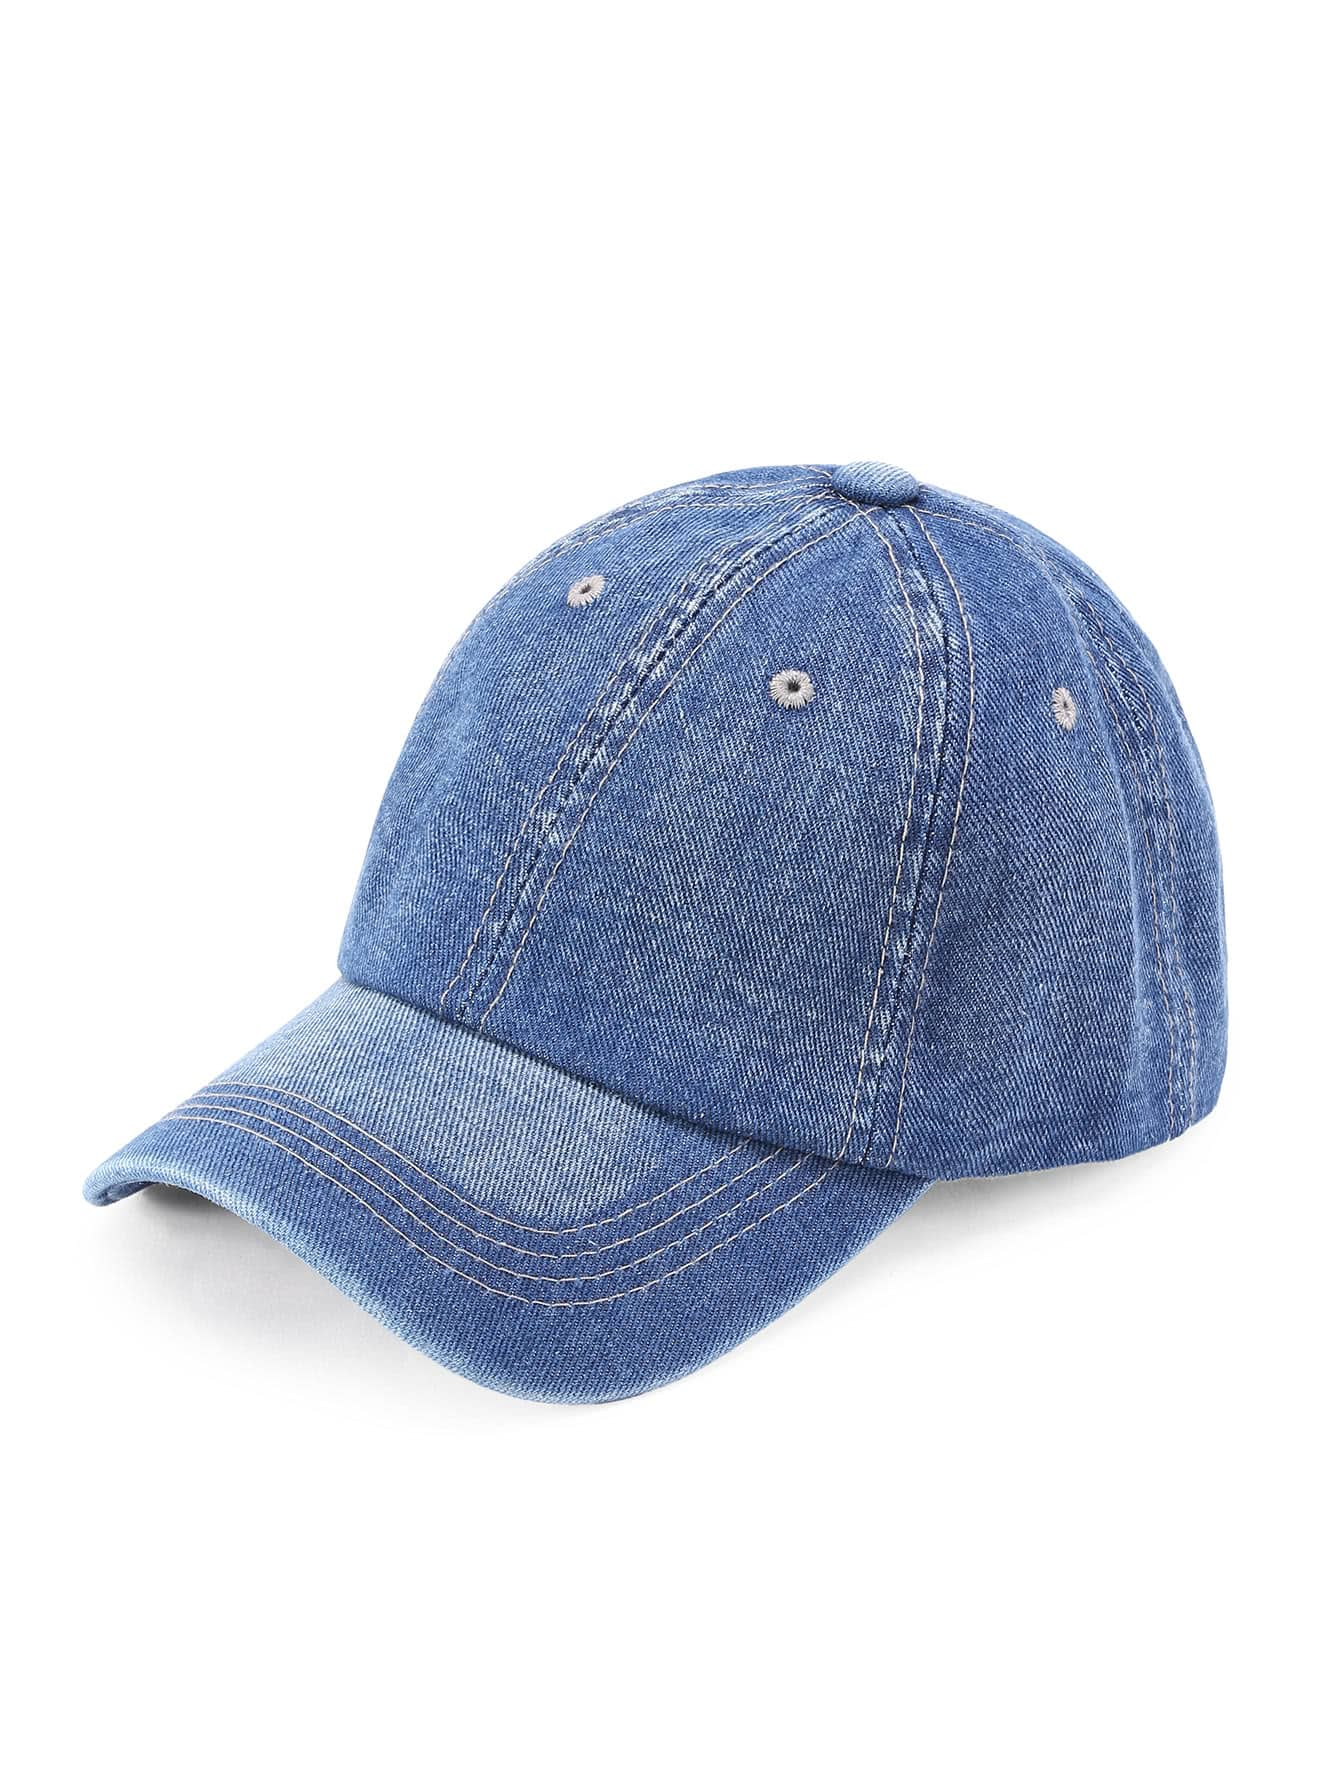 Denim Baseball Cap hat170608302